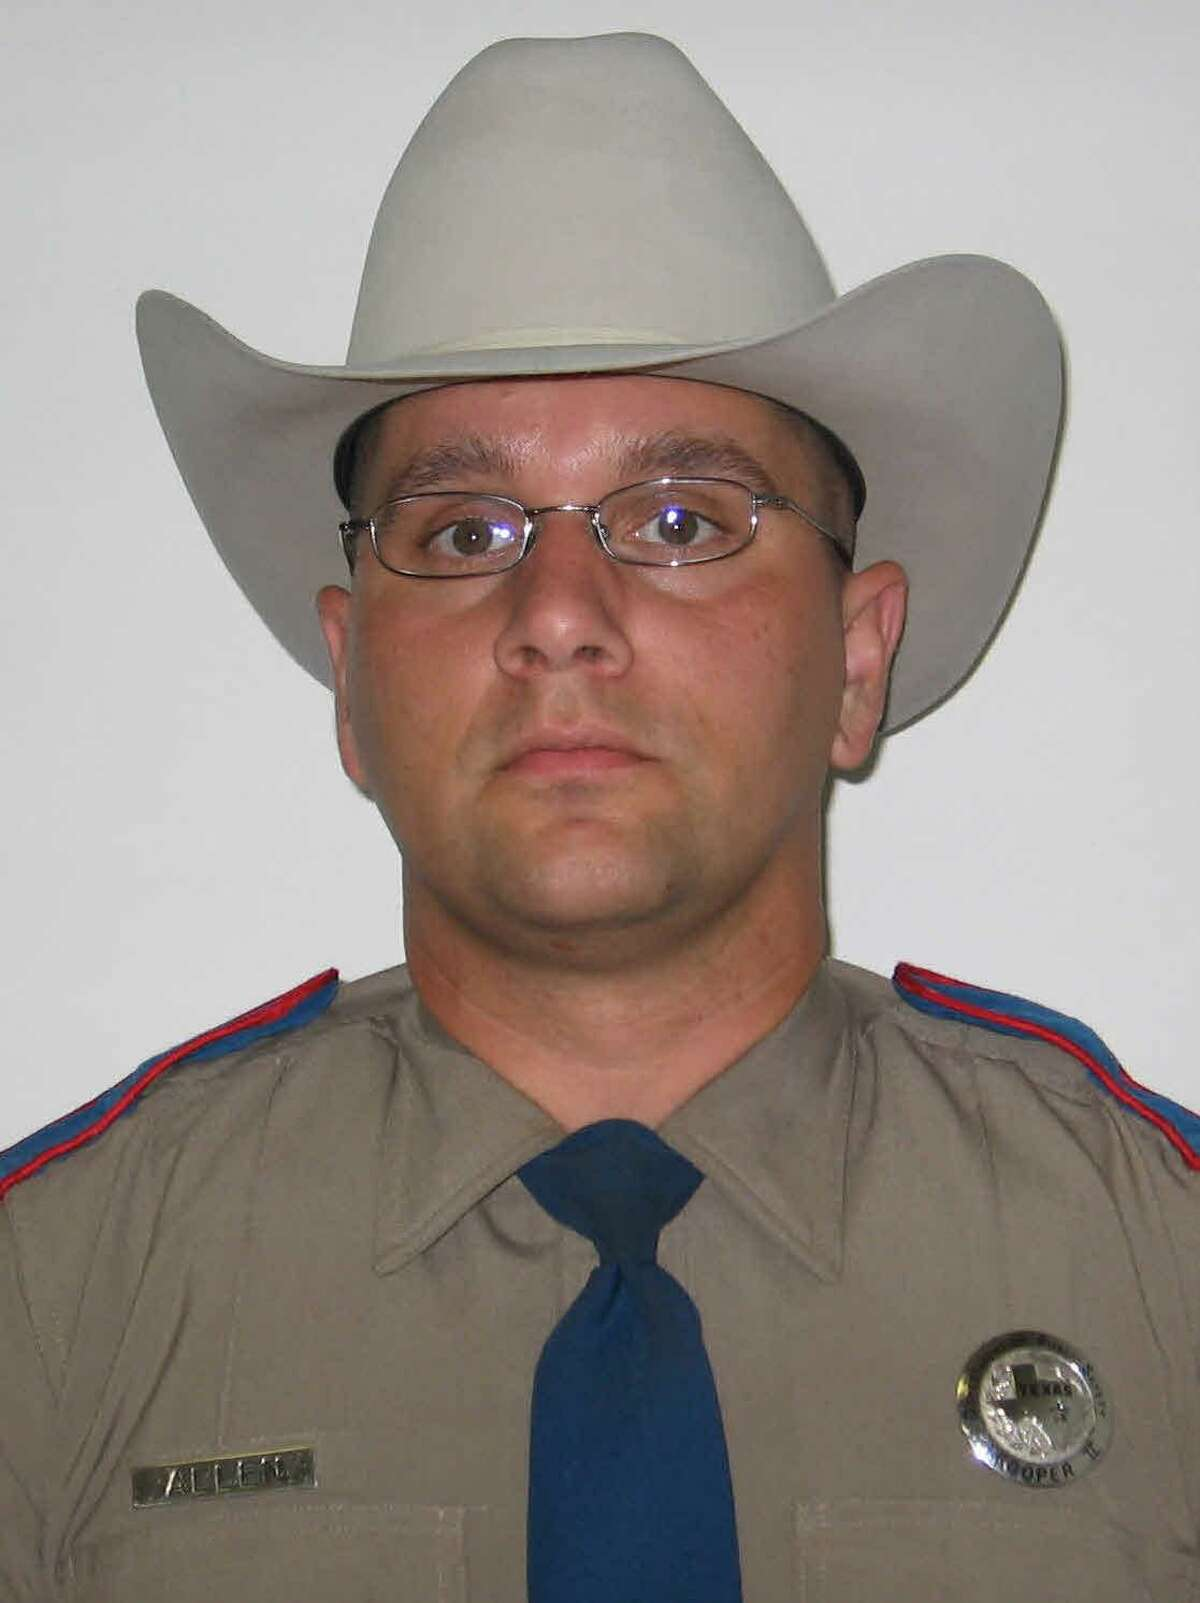 This undated image released by the Texas Department of Public Safety shows DPS Trooper Damon Allen who was killed on Thanksgiving, Nov. 23, 2017, while making a traffic stop in East Texas. His murder, allegedly by someone who had been out of jail on bail, sparked the Damon Allen Act, but it is not true bail reform.